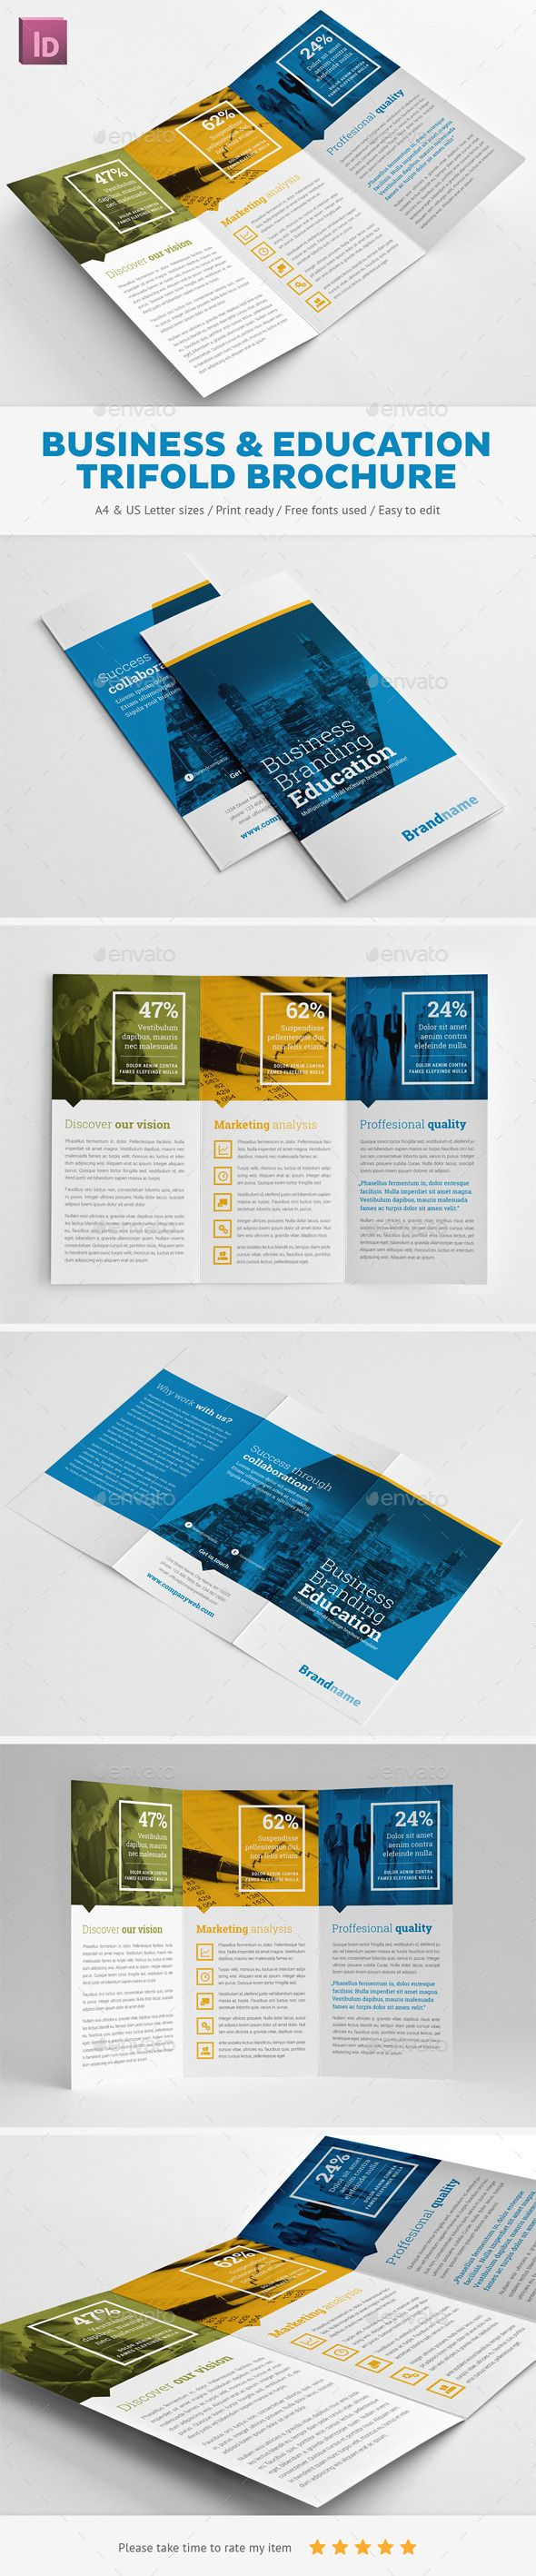 Business Branding & Education Trifold Brochure Template. Download: http://graphicriver.net/item/business-branding-education-trifold-brochure/11246190?ref=ksioks